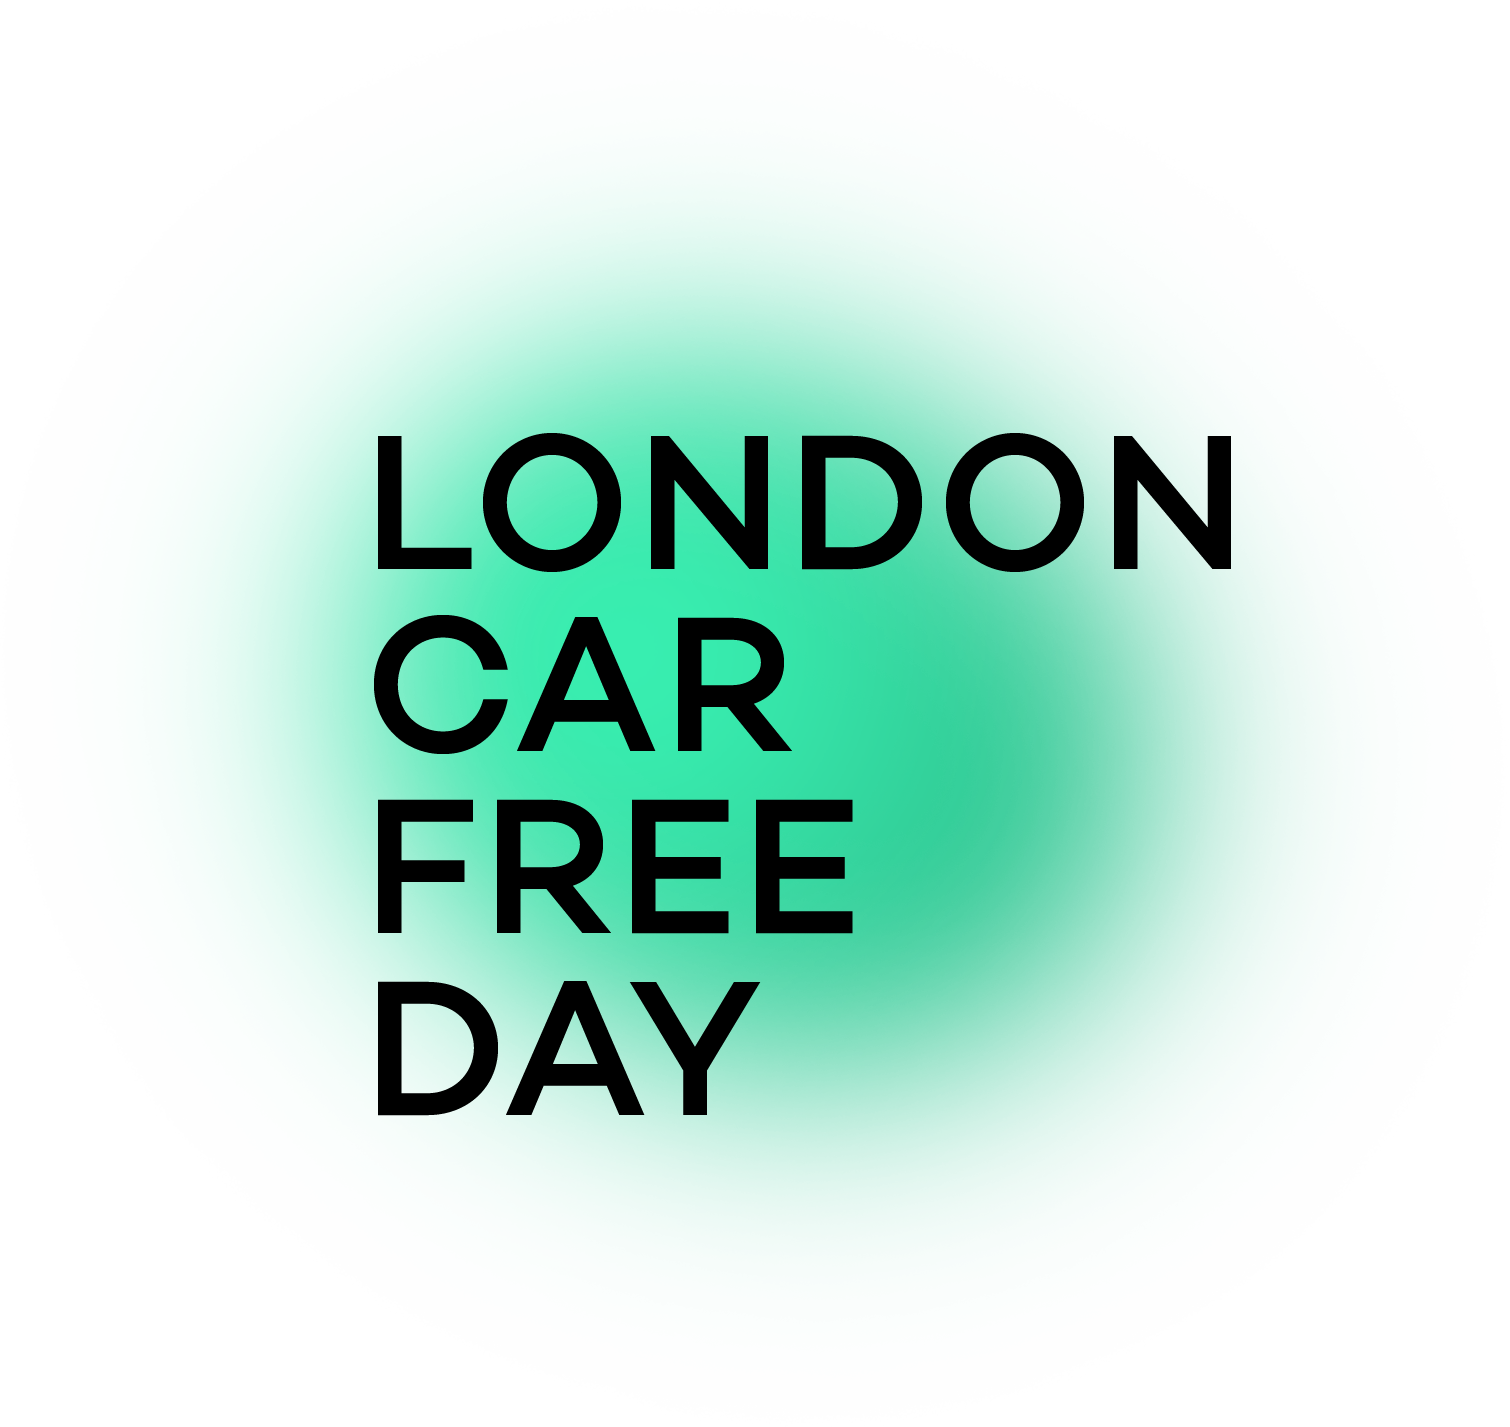 London Car Free Day 2018